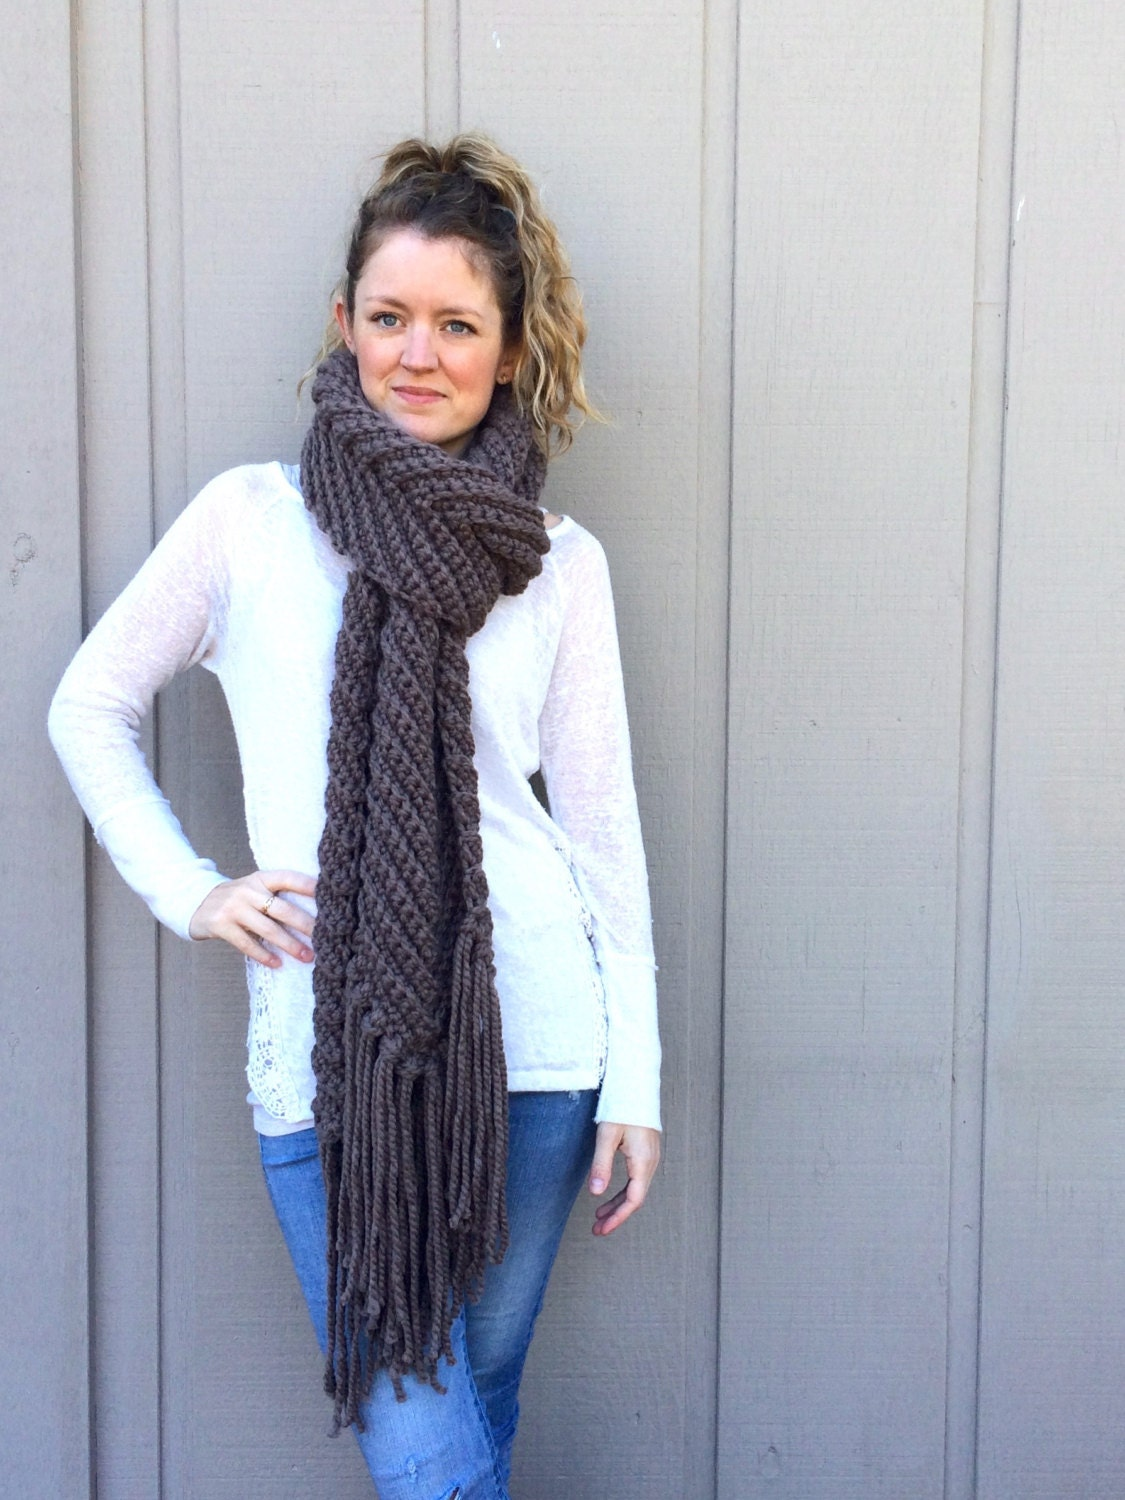 Crochet Shawl Patterns Bulky Yarn : 2 Crochet Patterns: Infinity Scarf cowl super bulky chunky